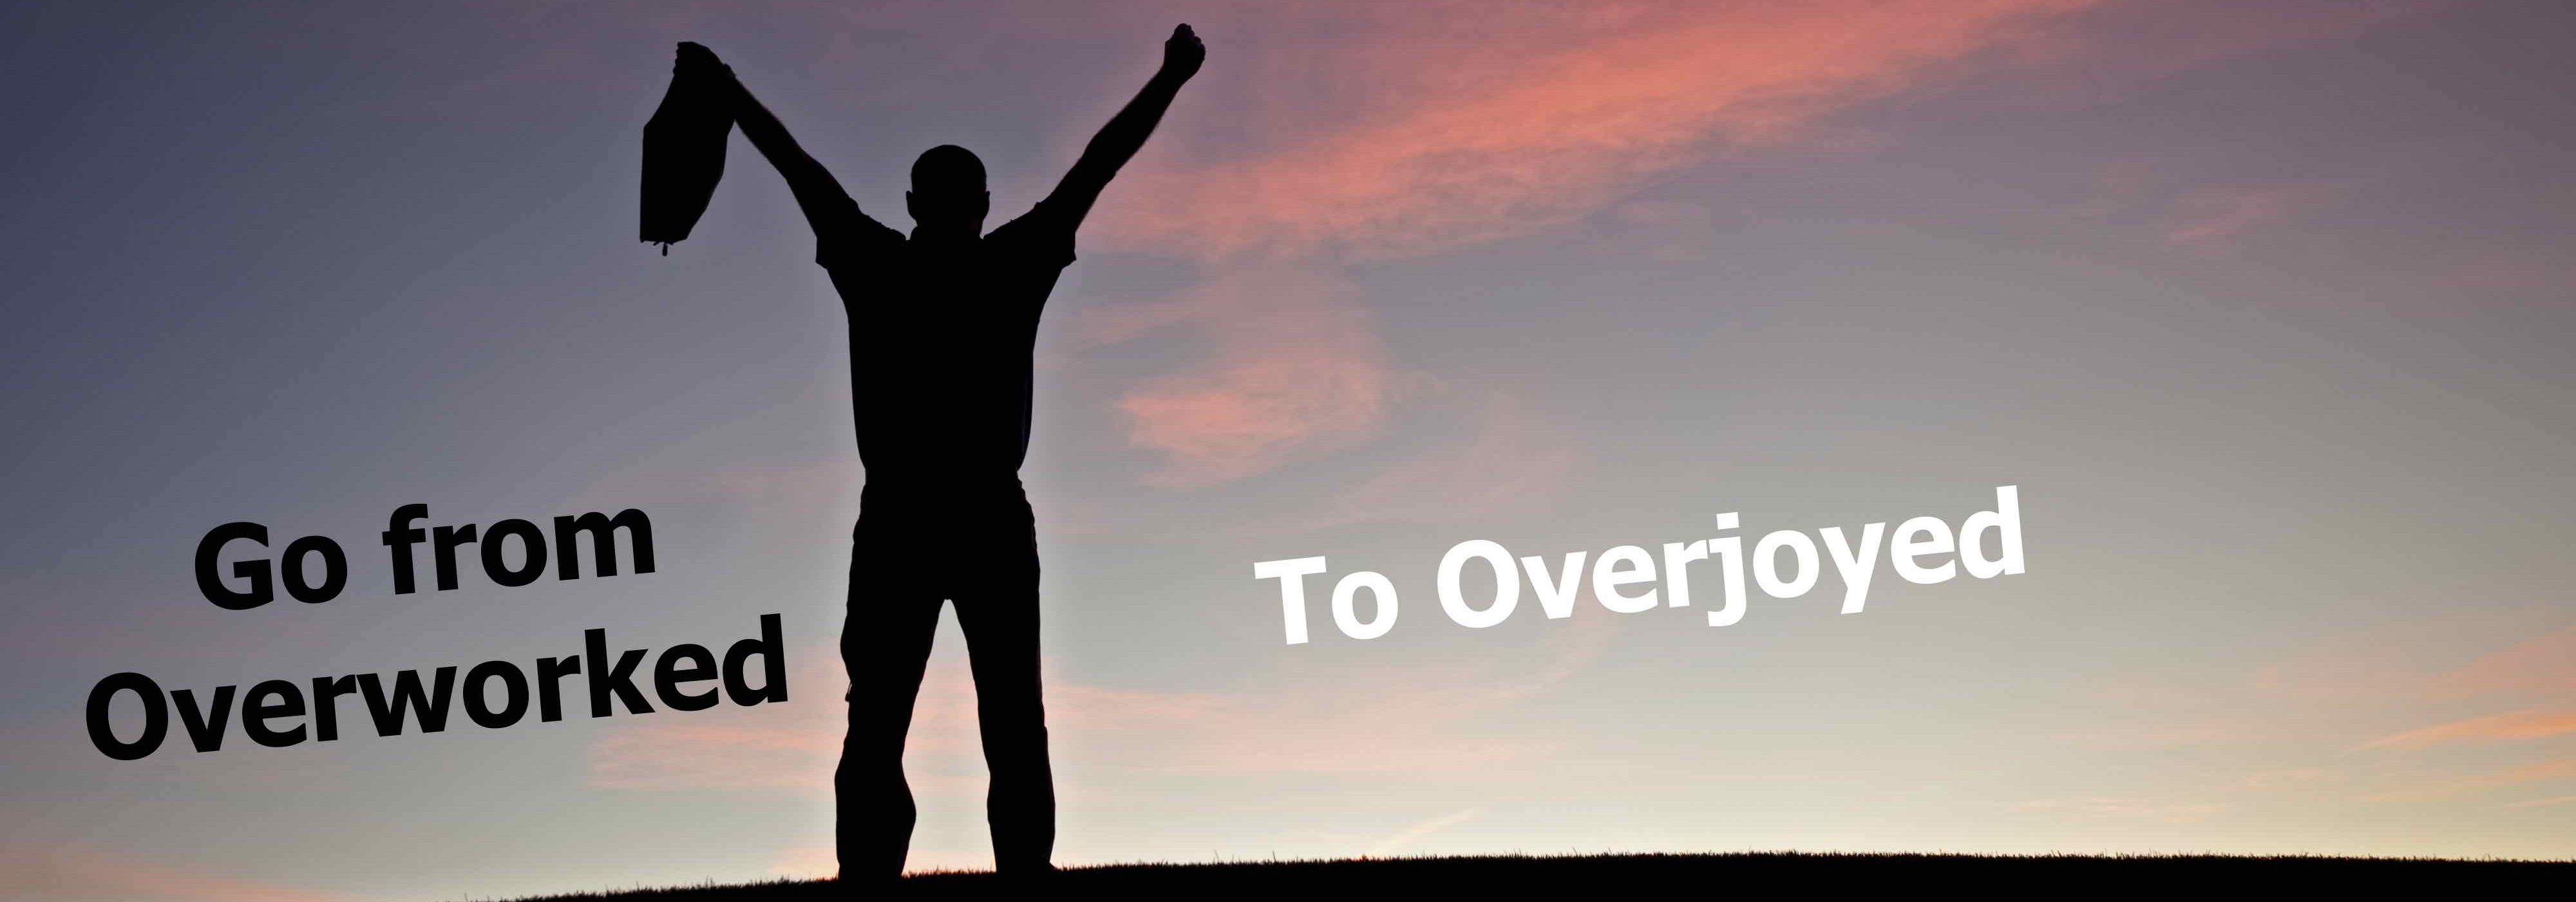 Go From Overworked to Overjoyed